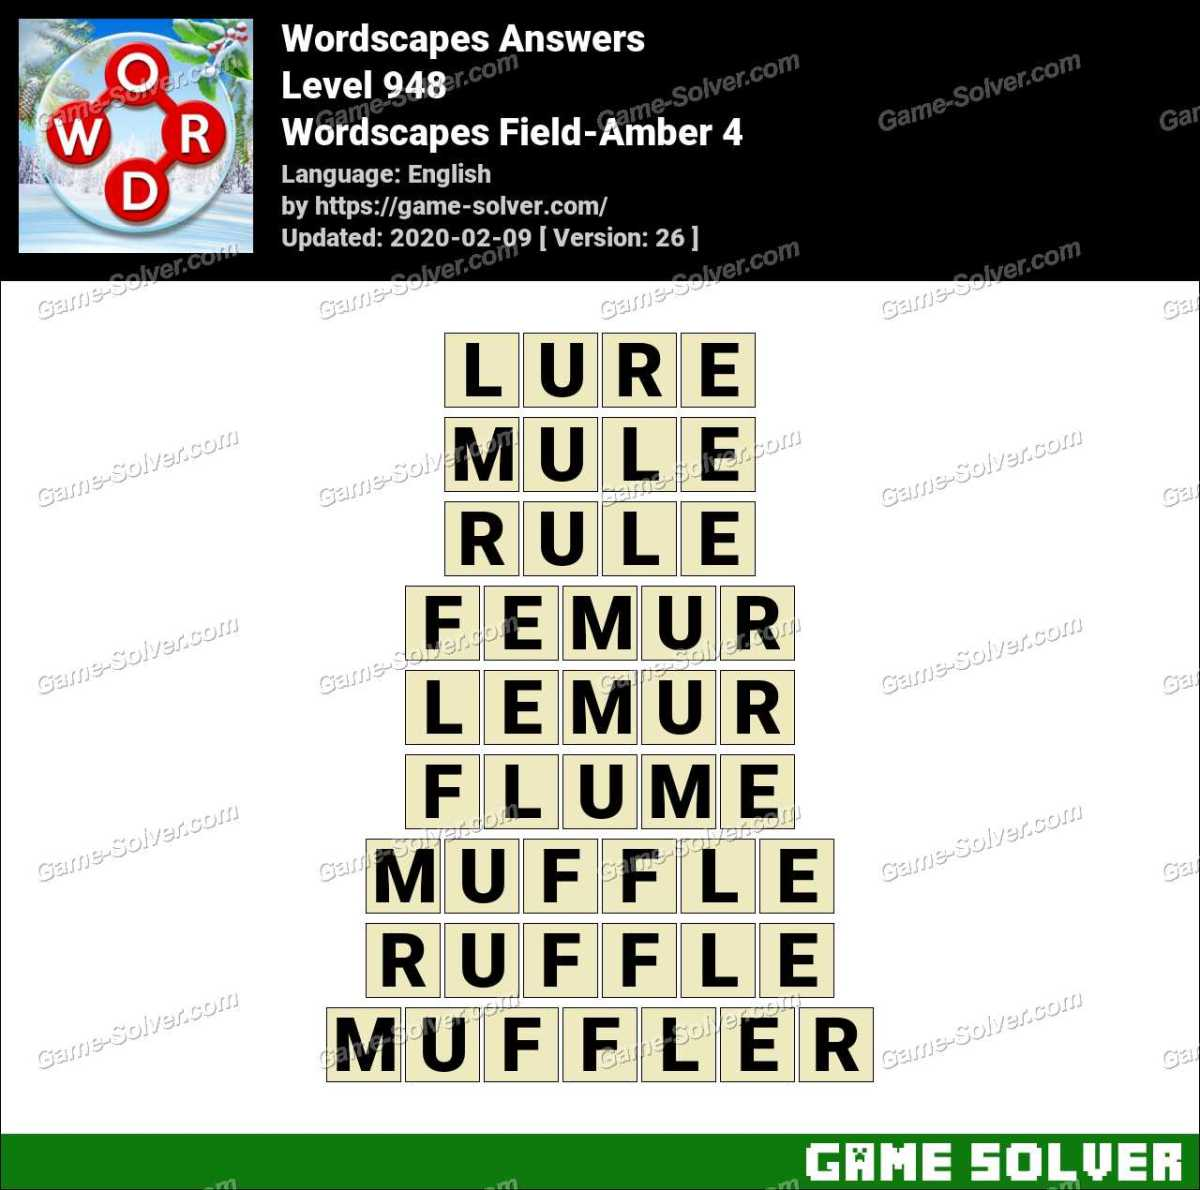 Wordscapes Field-Amber 4 Answers